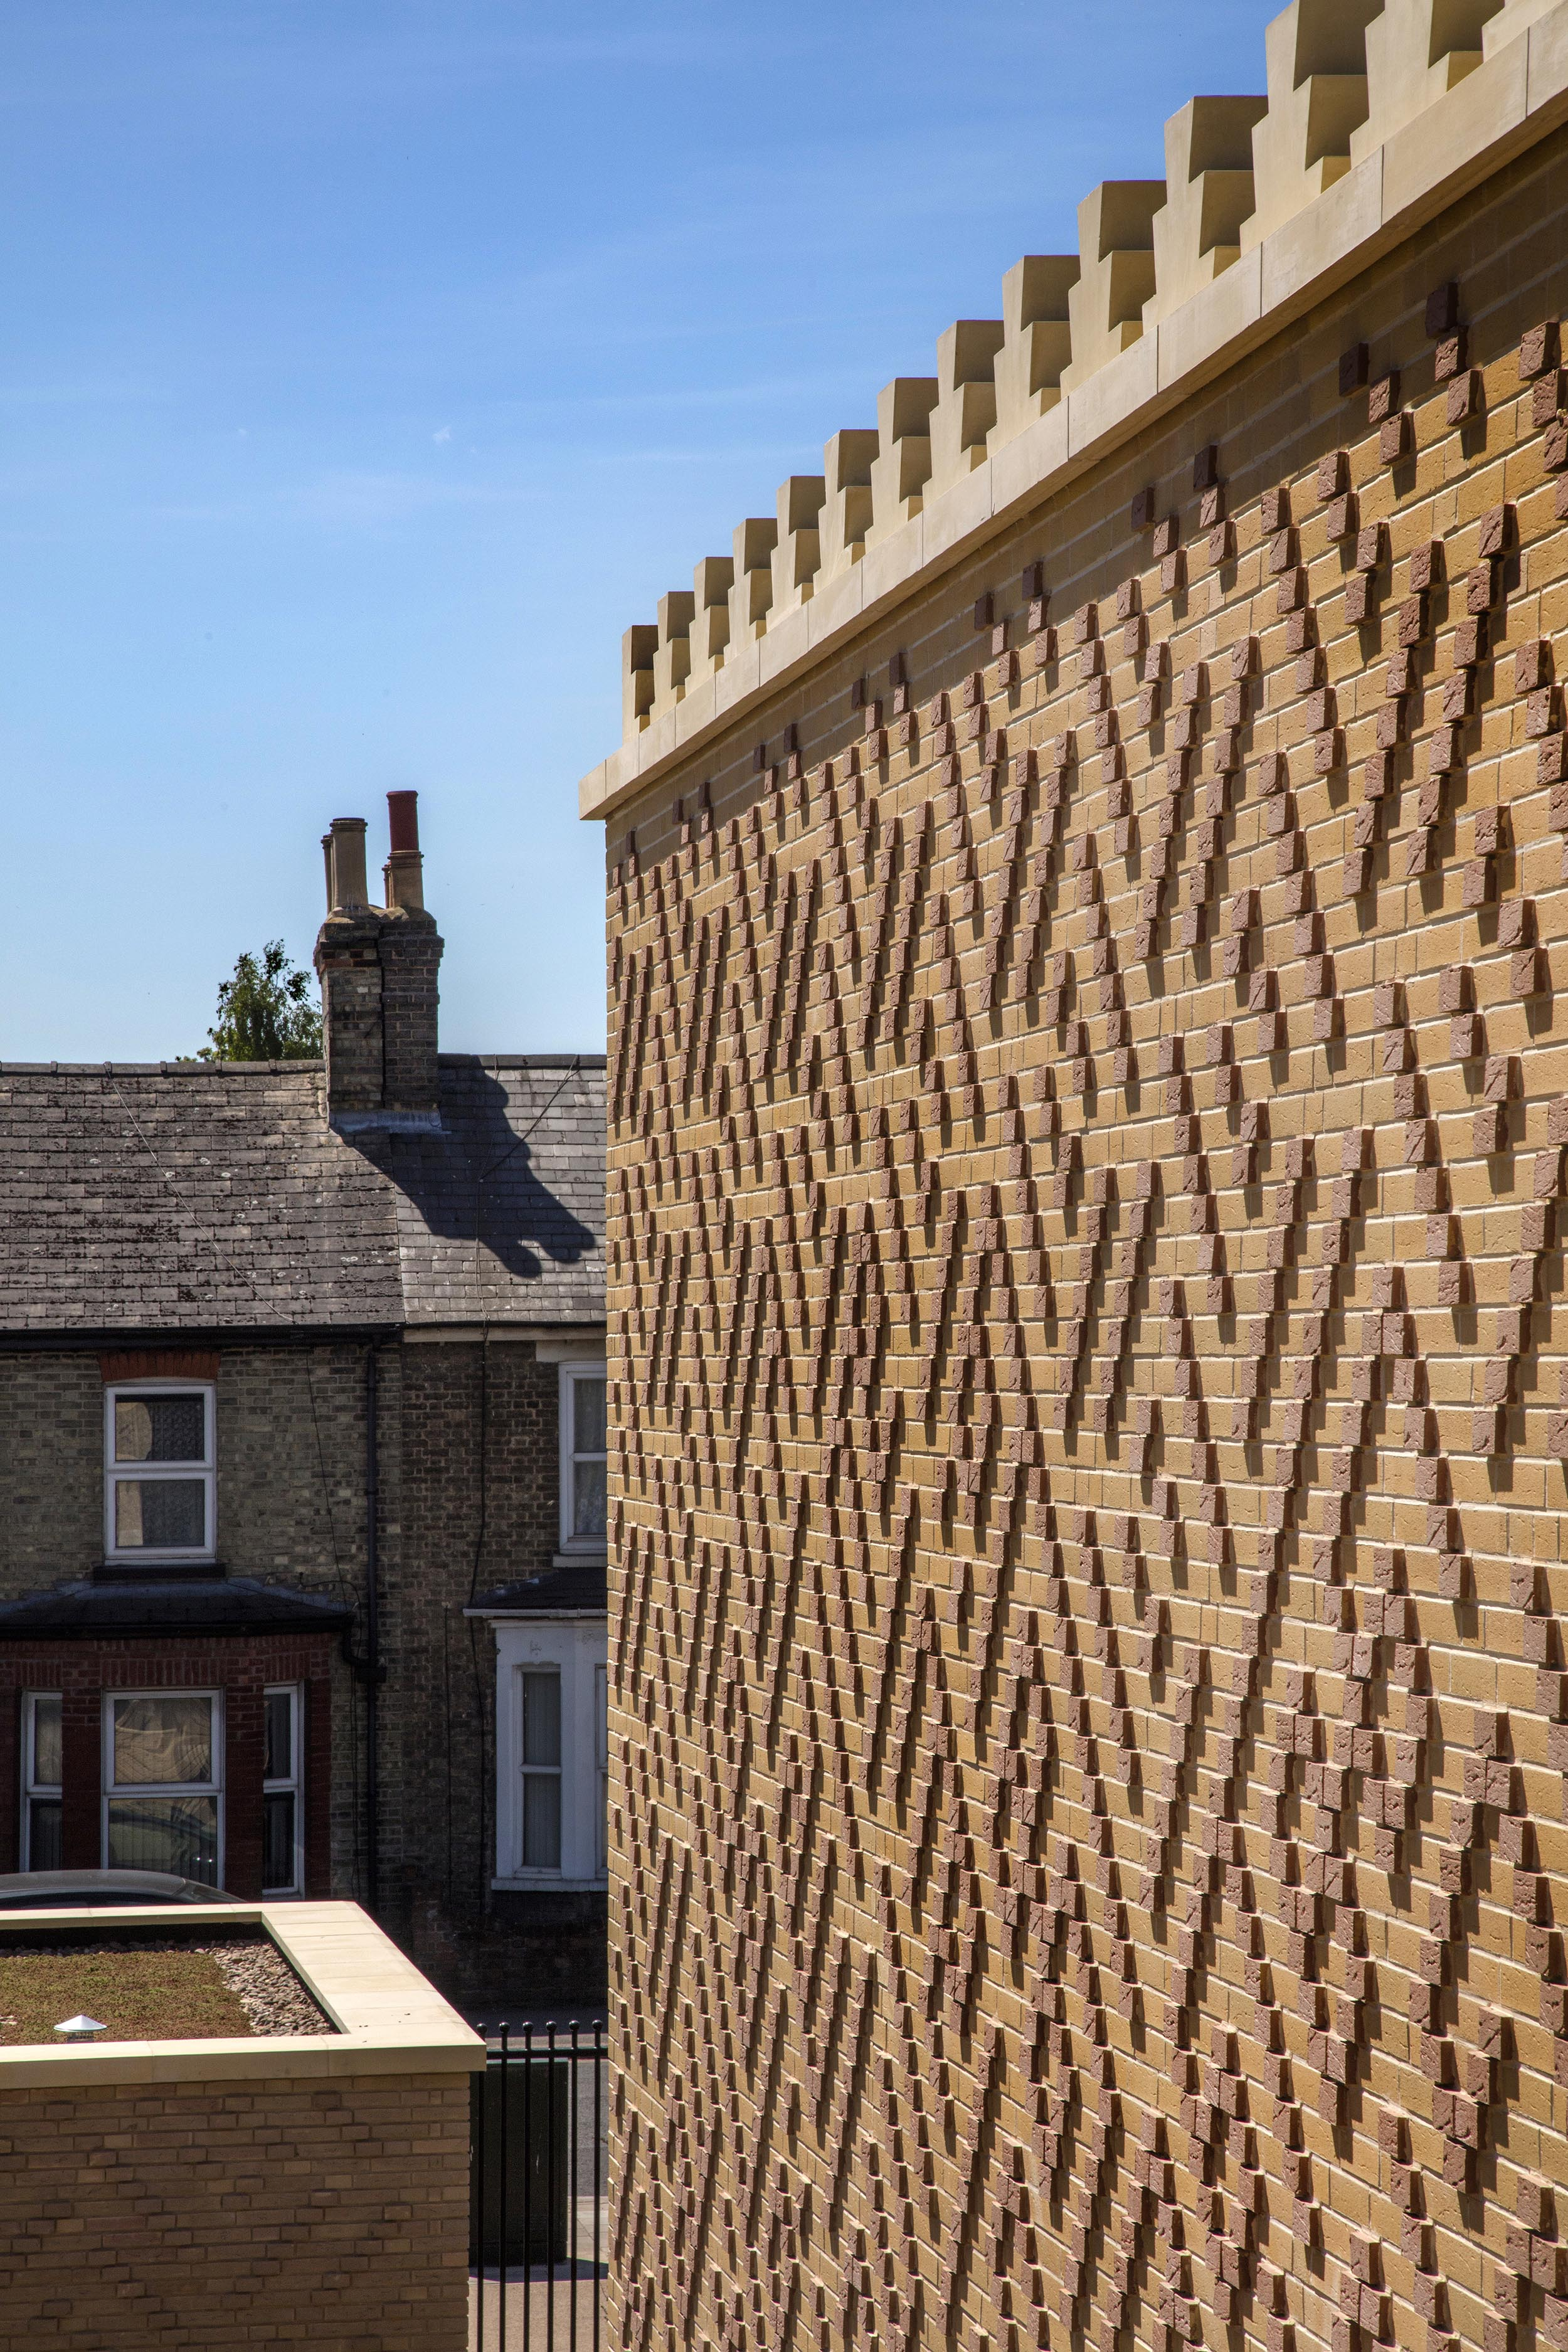 Cambridge Mosque Brick tile cladding & crenulations by Marks Barfield architects, photography by Morley von Sternberg